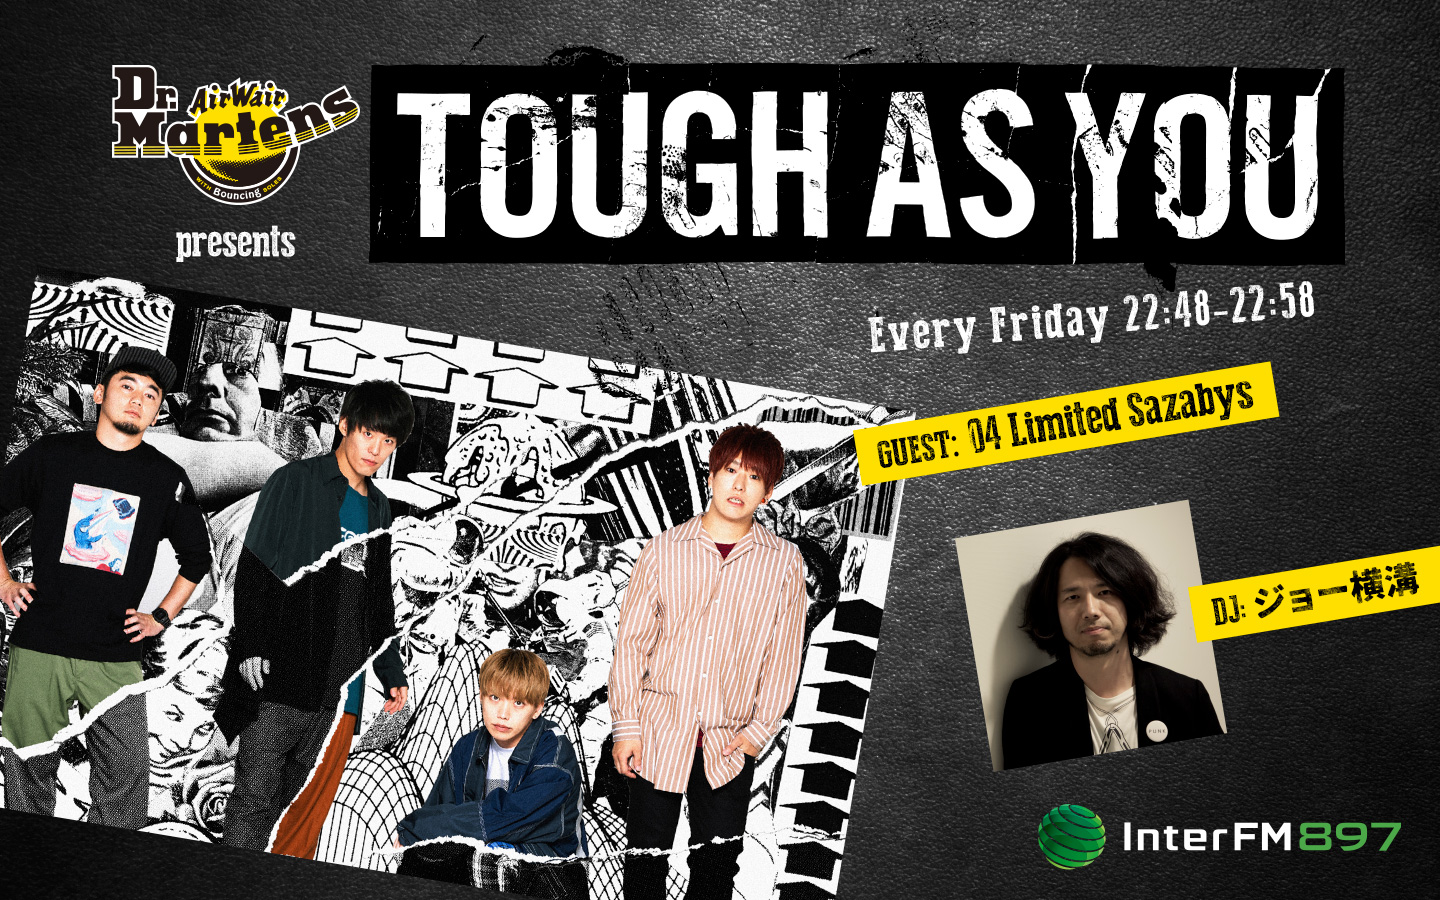 InterFM897「Dr.Martens presents Tough As You」22:48~22:58